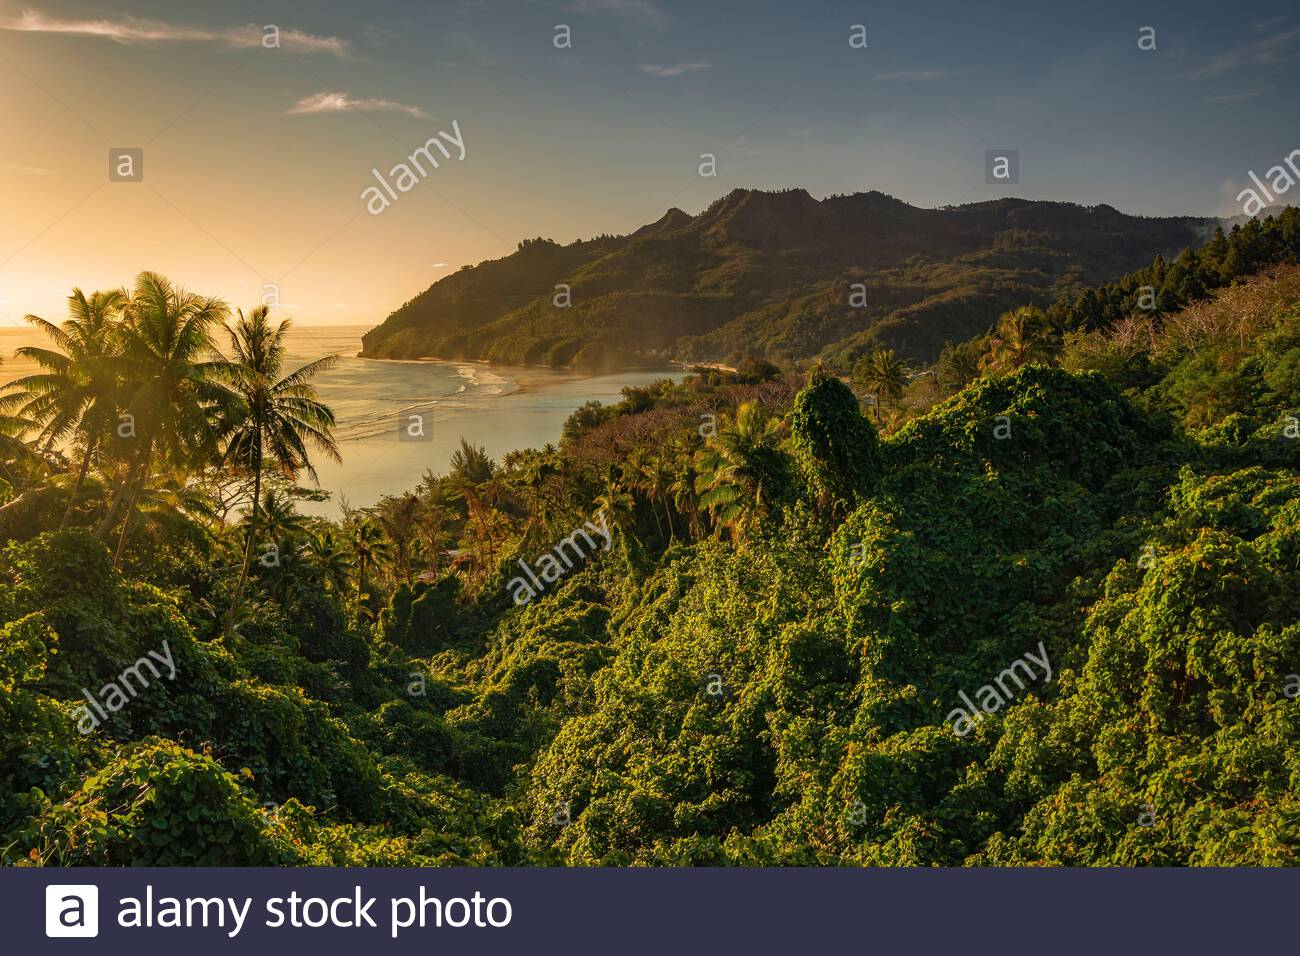 rurutu-island-french-polynesia-at-sunset